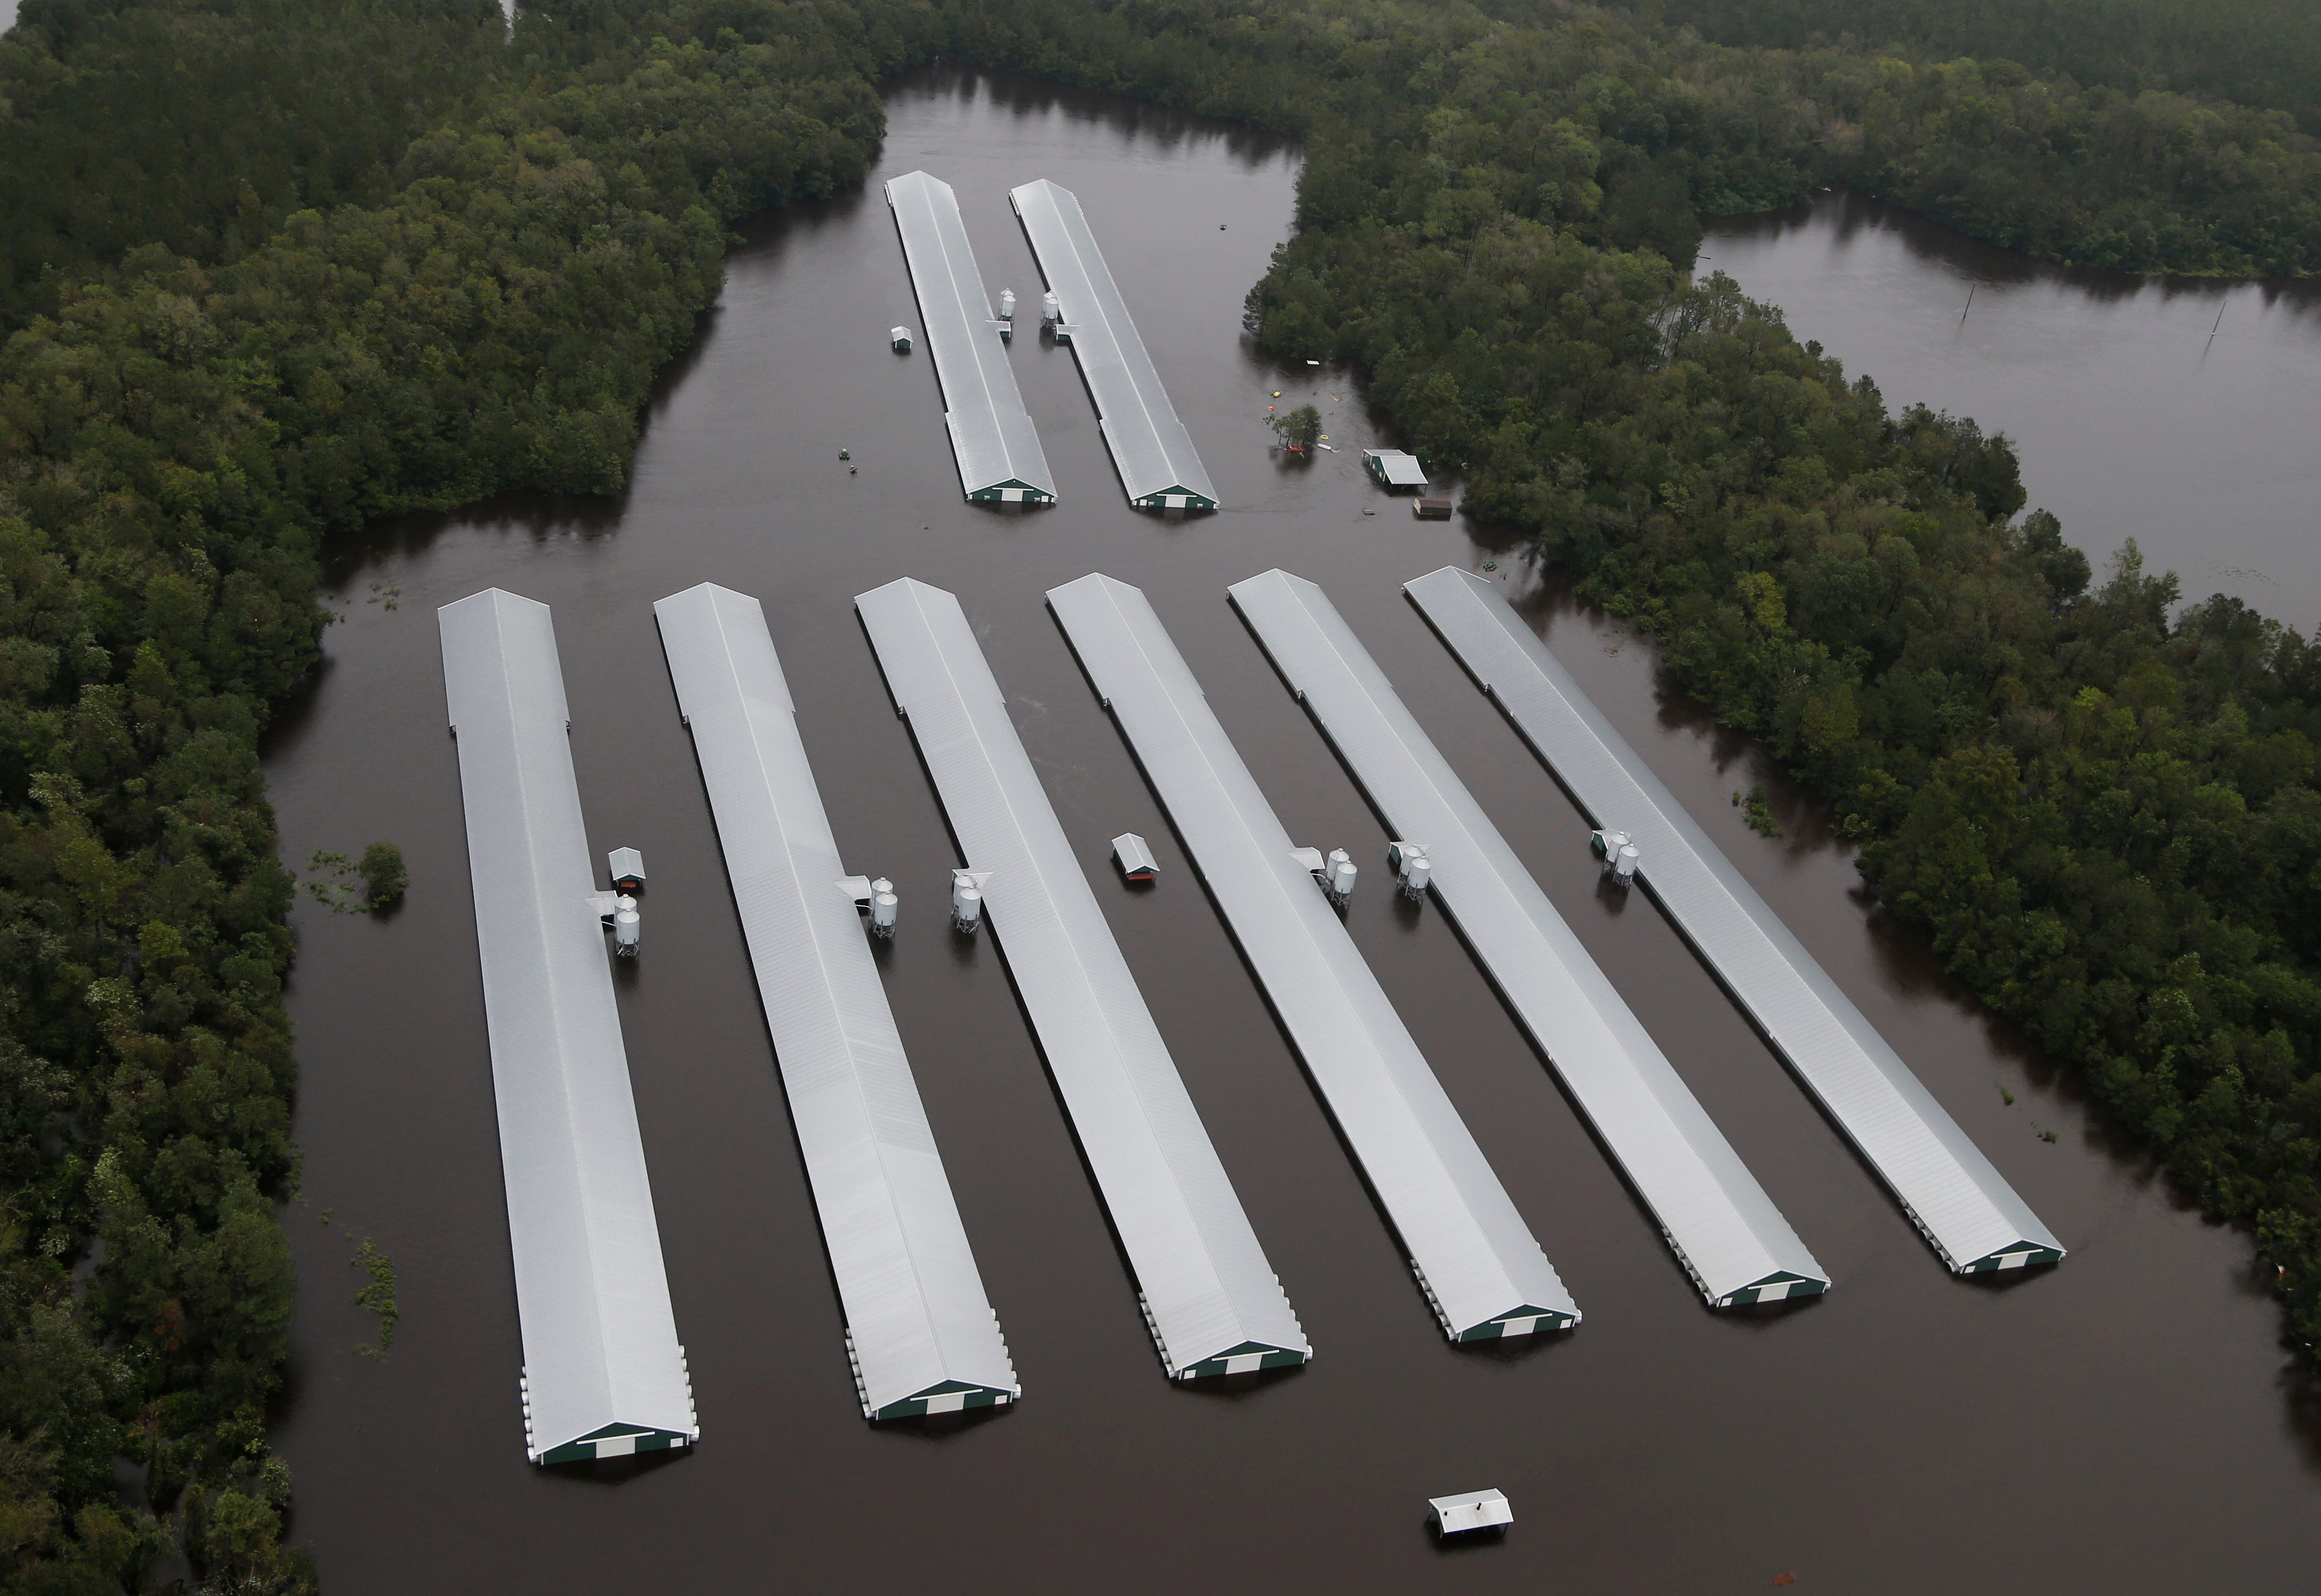 At least 1.7 million chickens dead in flooding from Florence, major poultry producer says